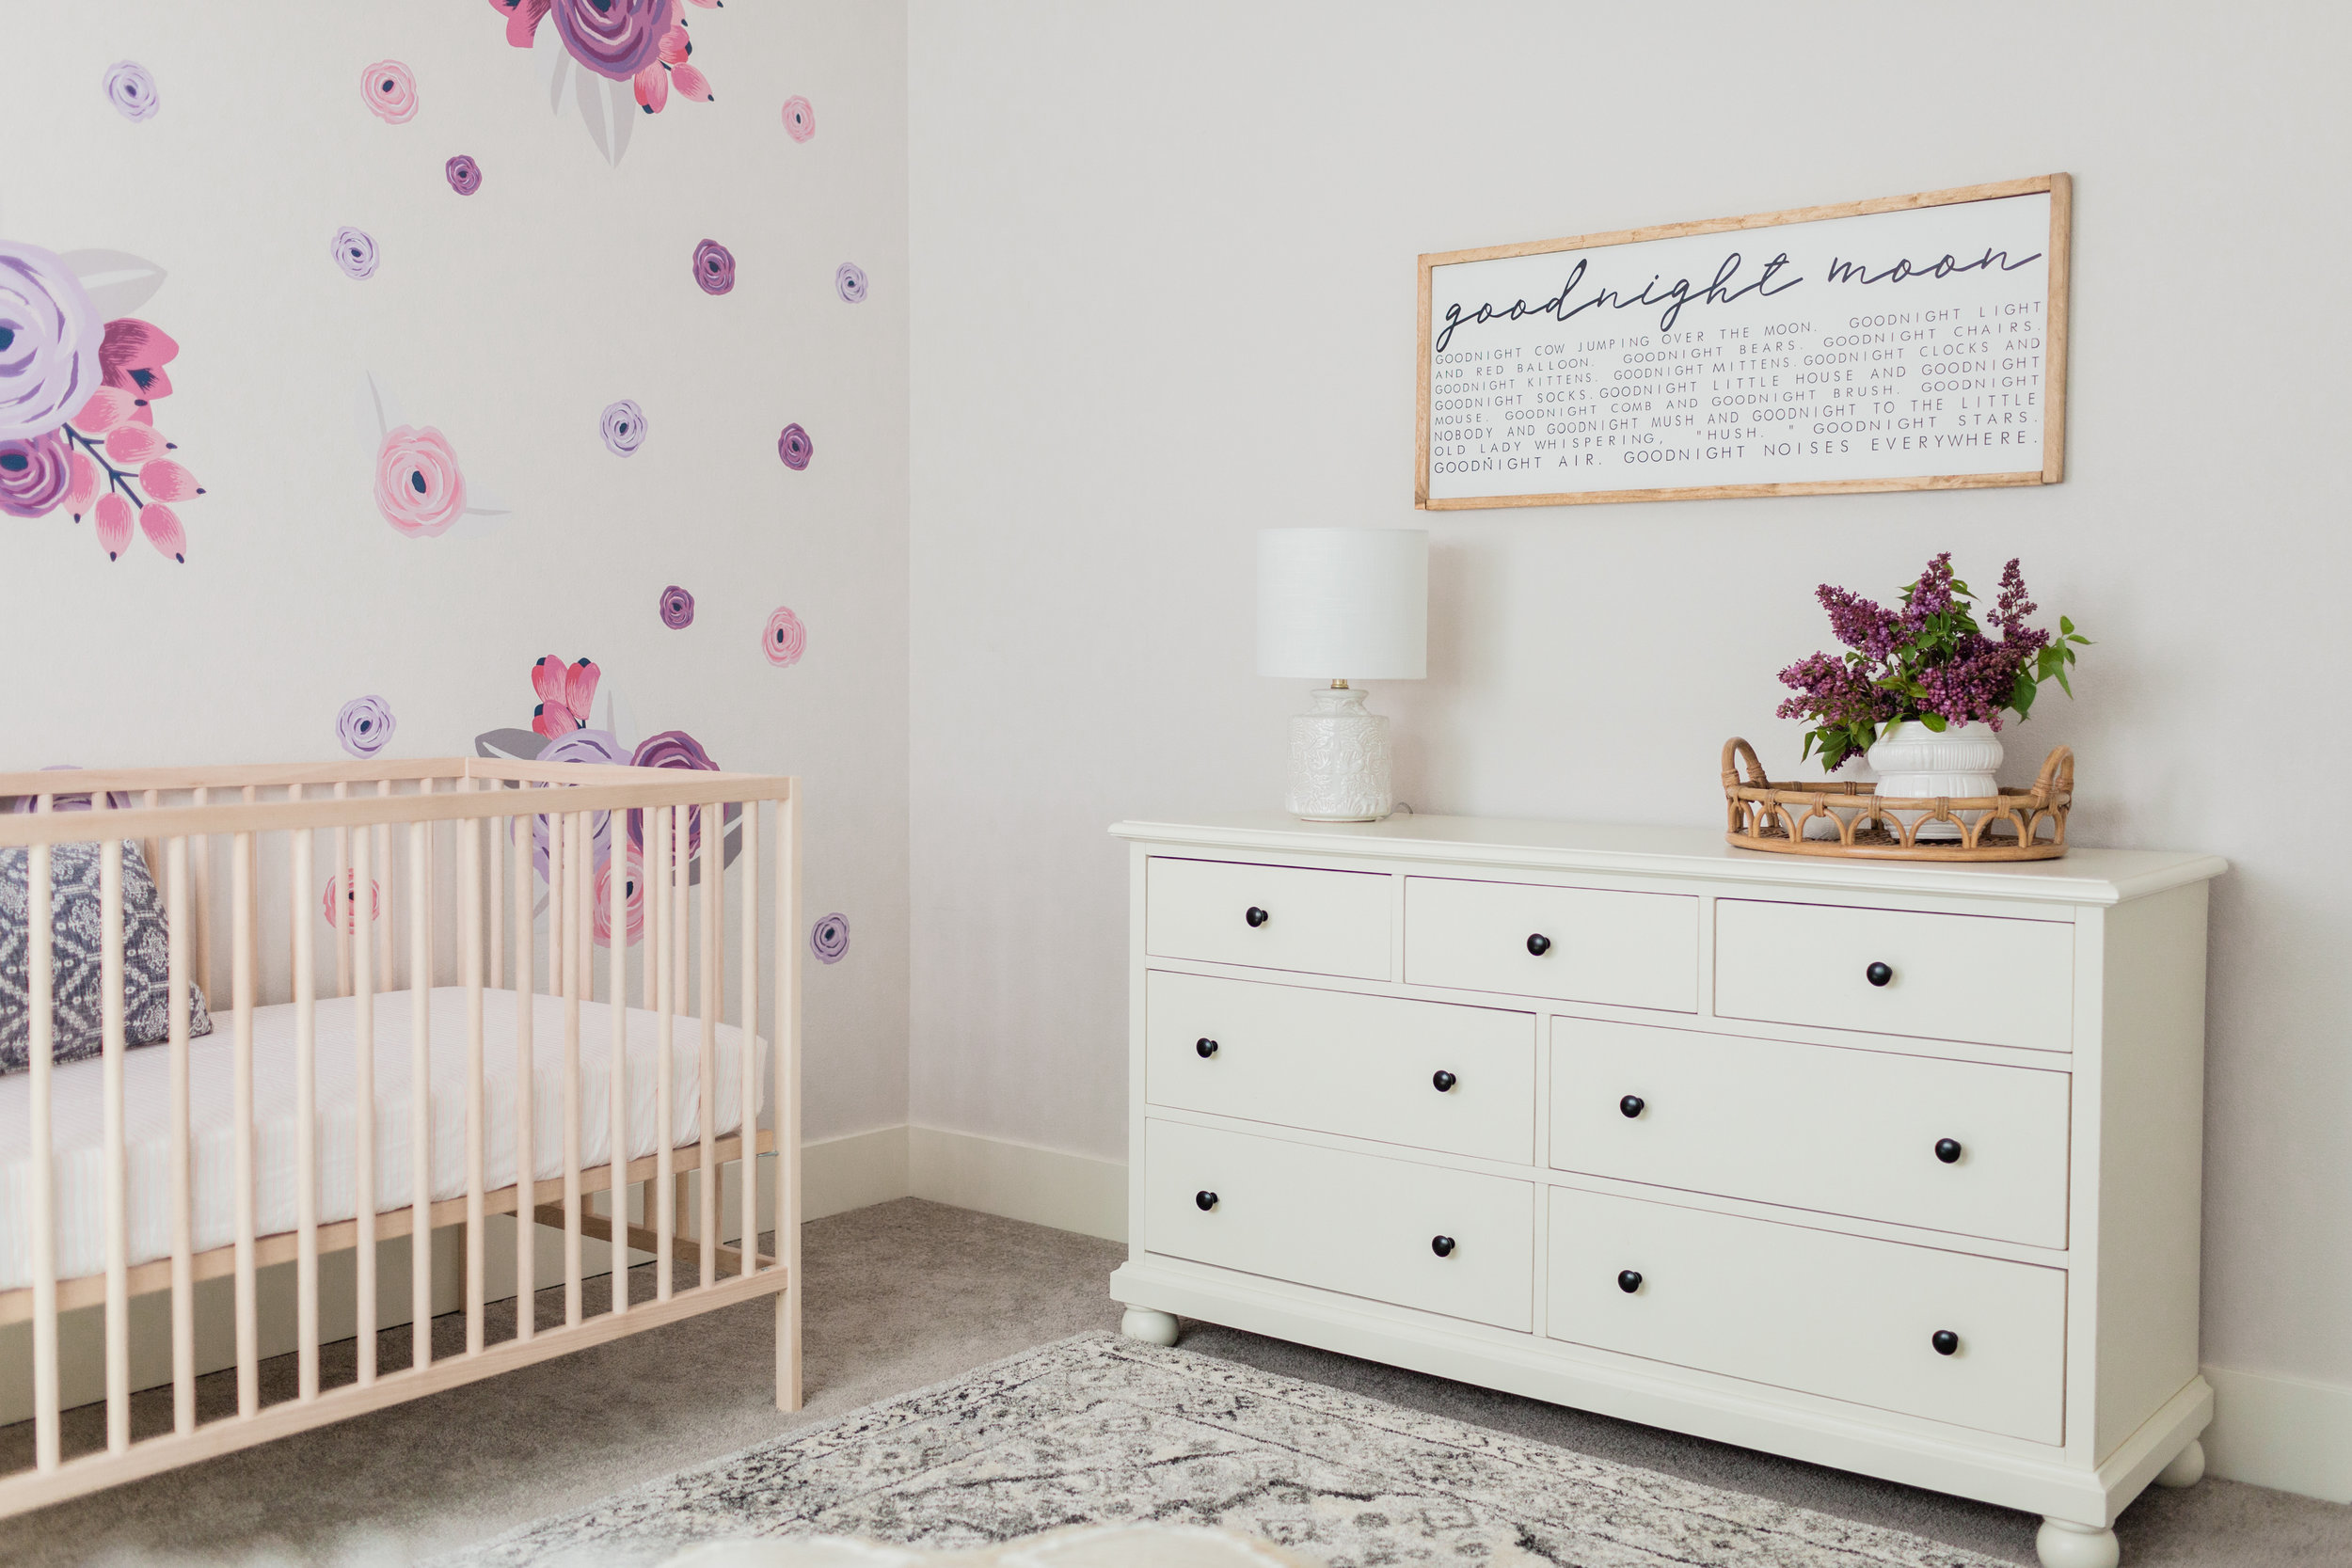 Charming Floral Nursery Design by Harper Rae Design Co